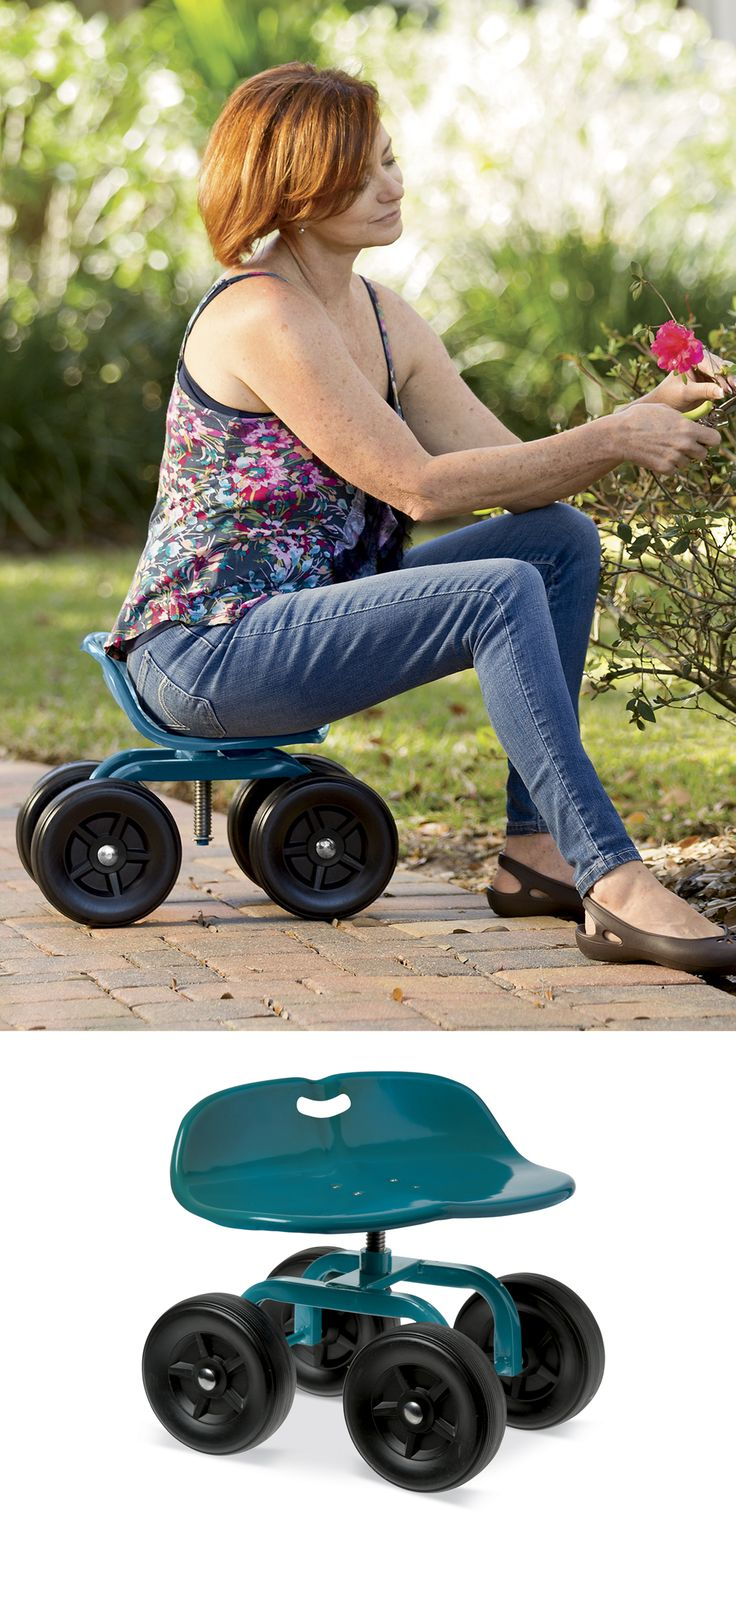 "New - Low Rider Swivel Scoot puts plants within easy reach. Rolling scoot with swiveling contoured seat lets you tend plants from a low, seated position, extending your reach and preventing strain in your shoulders, lower back and knees. Swivel the seat to adjust it from 9"" to 13-1/2"" high. Durable powder-coated steel."